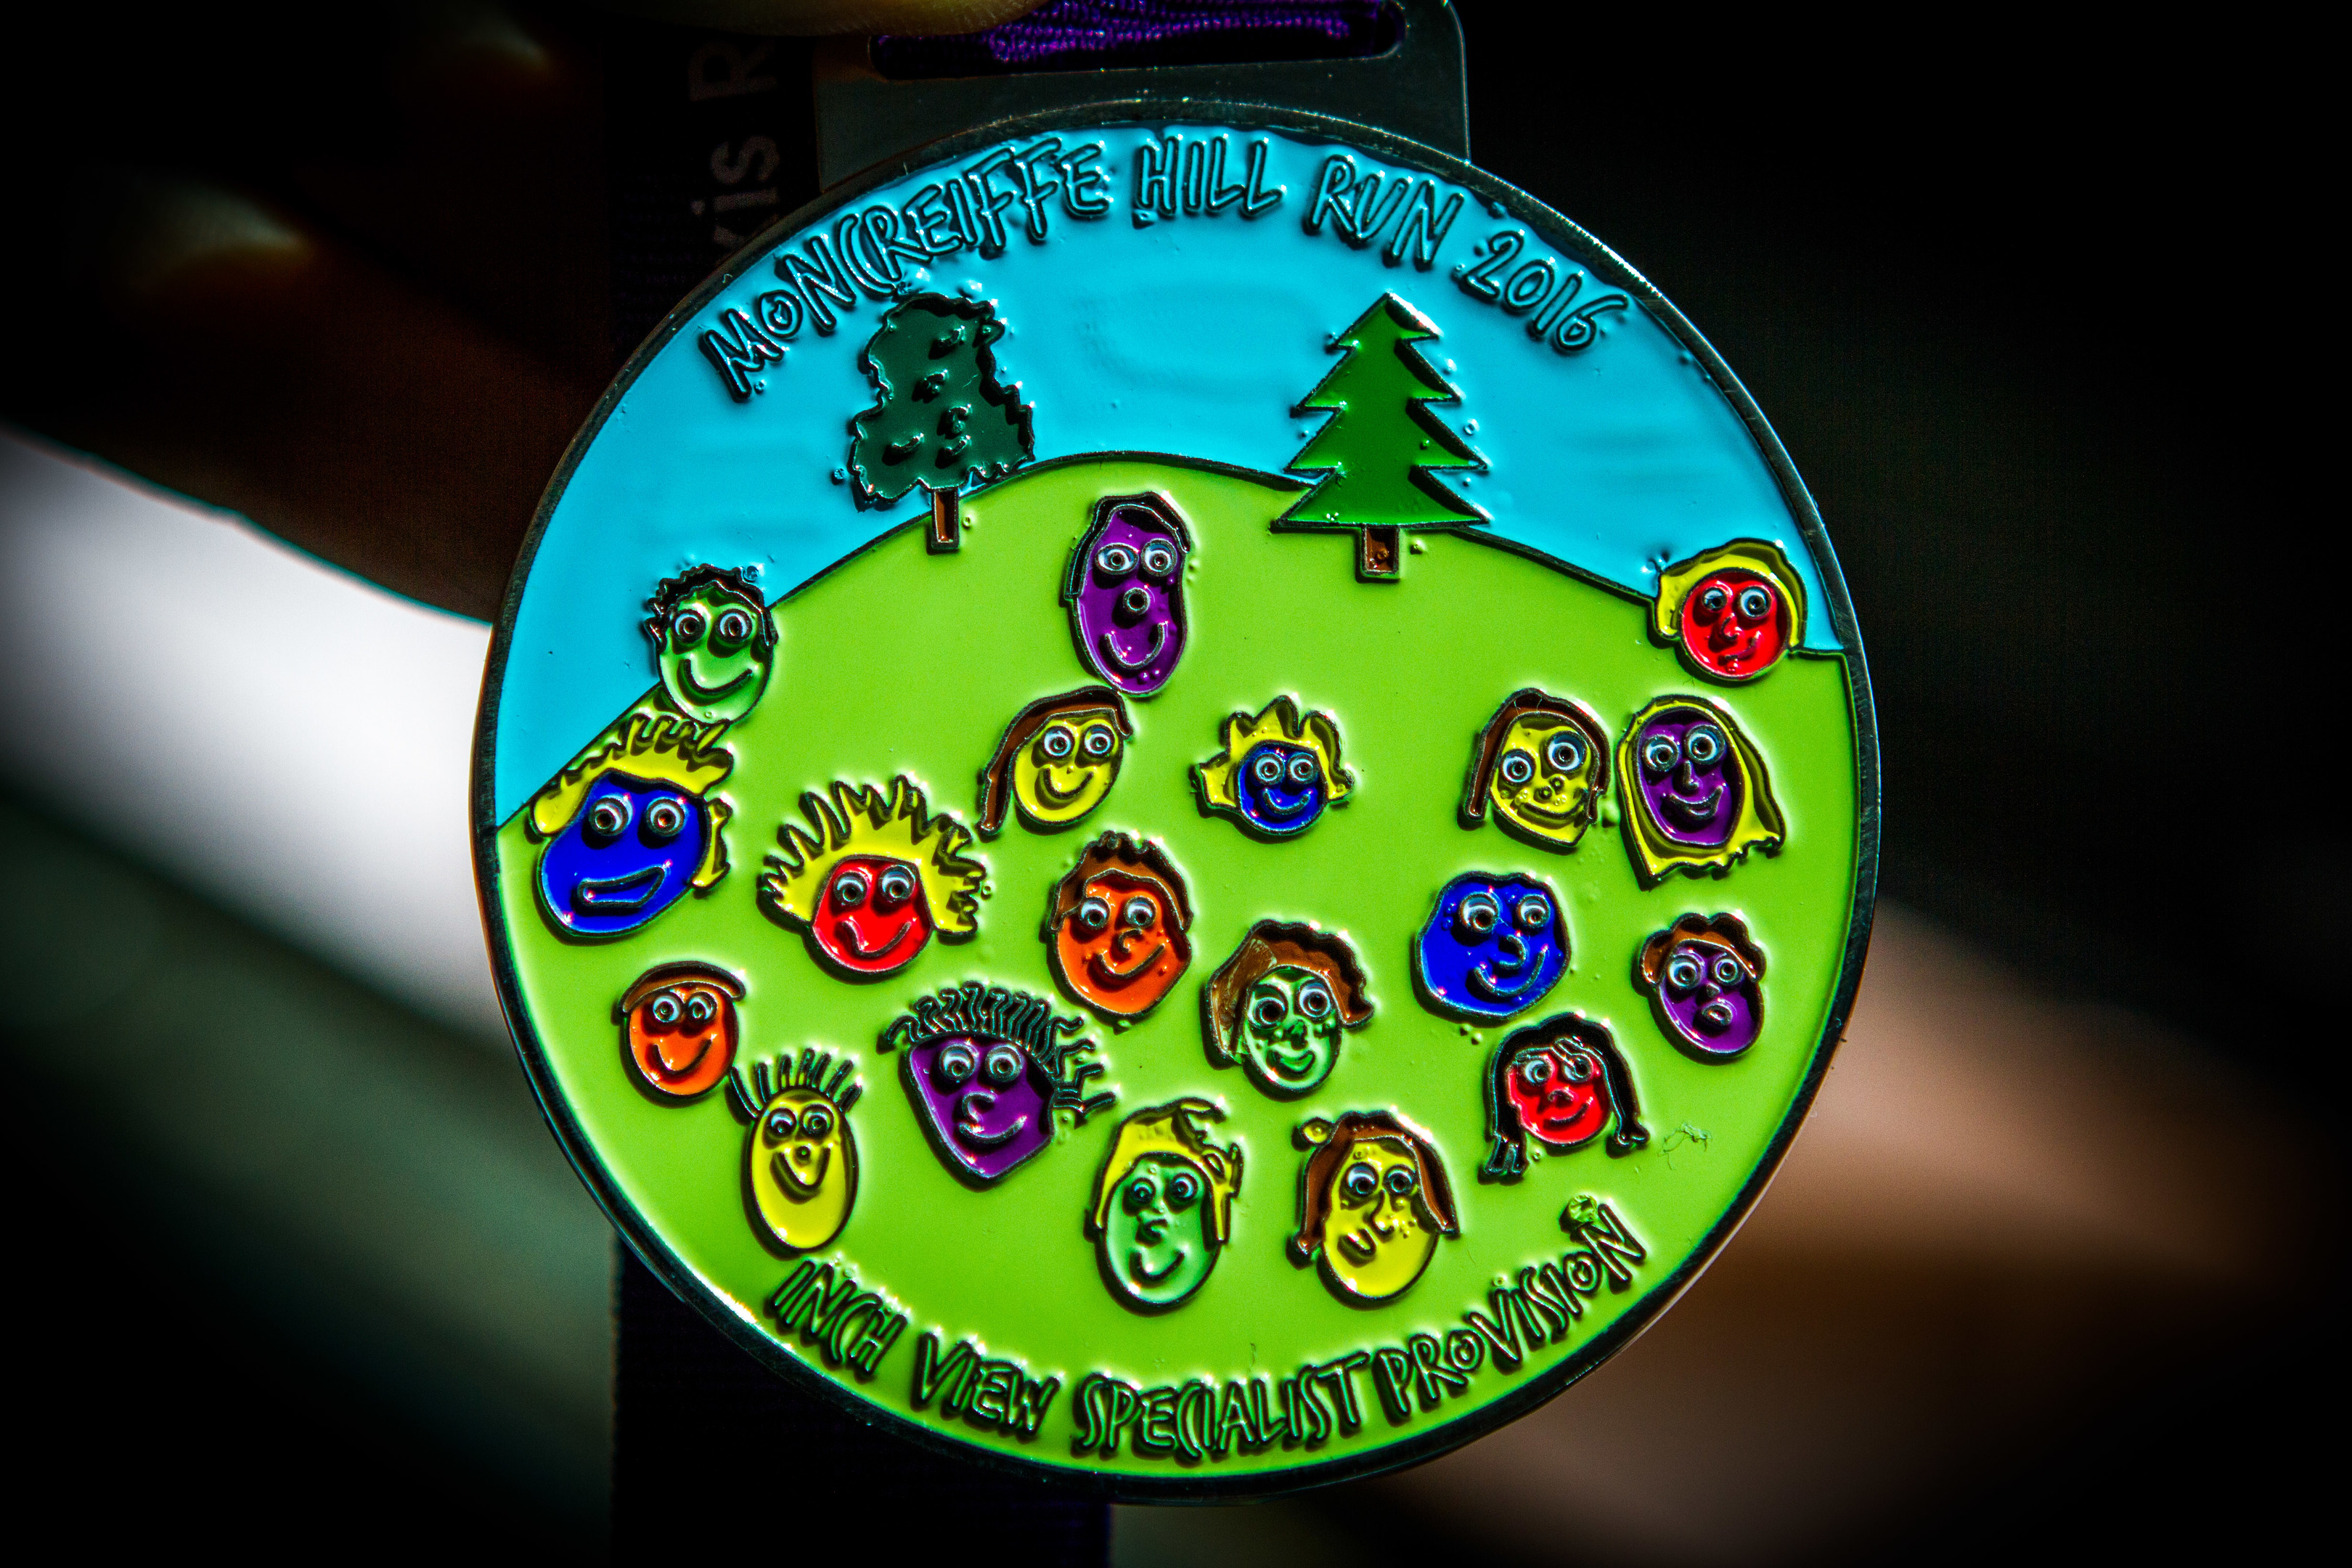 The medal designed by Inchview Primary pupils for the Alexis Rose Trail Race